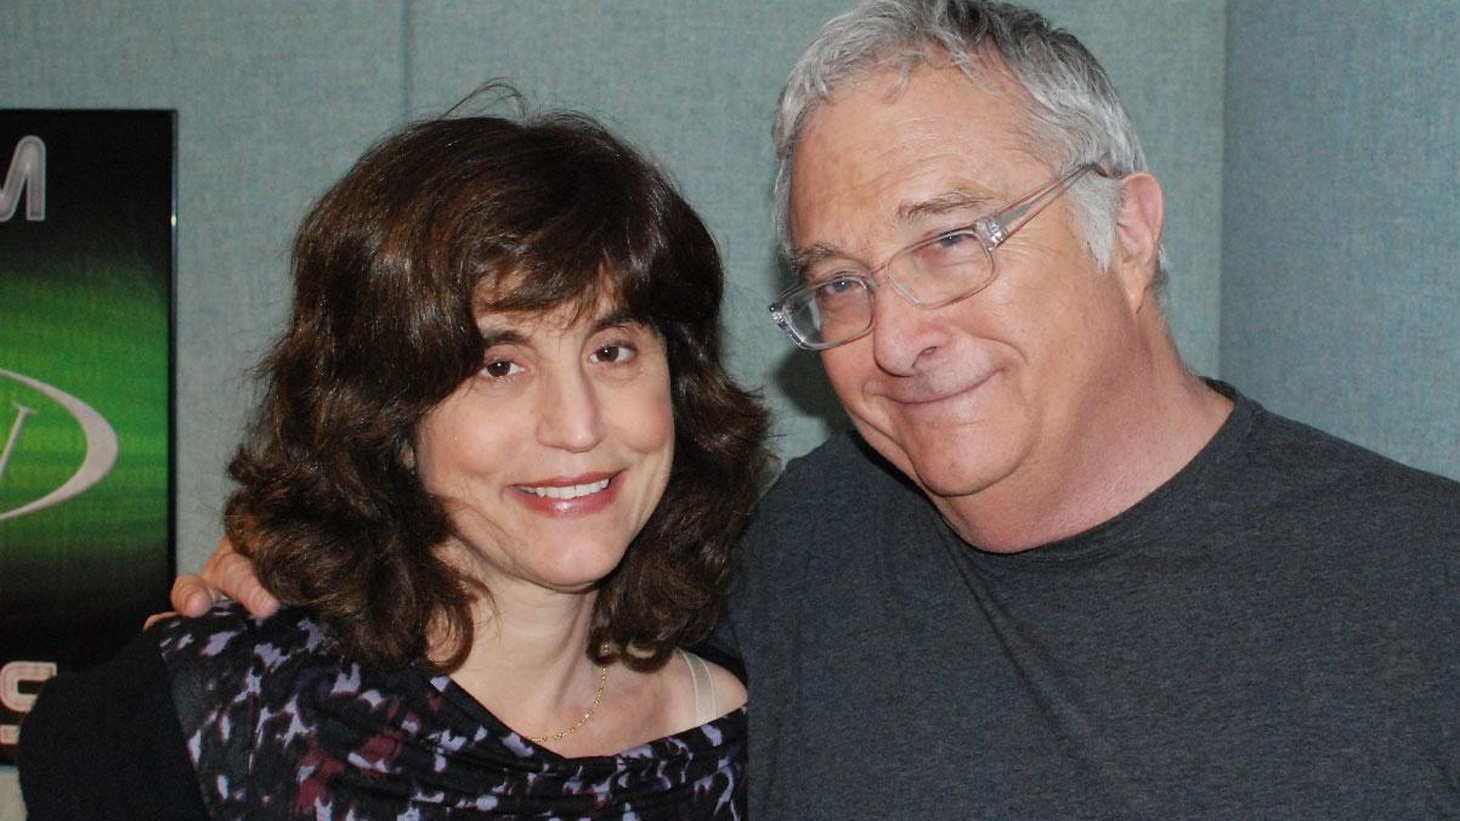 """Composer-singer-songwriter Randy Newman has had 20 Oscar nominations and one win. This year he's nominated in the Best Song category for """"We Belong Together"""" from Toy Story 3. But despite his success he says he wishes he was really good. Then, David Friendly, the producer behind the Big Momma's House franchise, talks about being a white guy in the urban comedy business."""